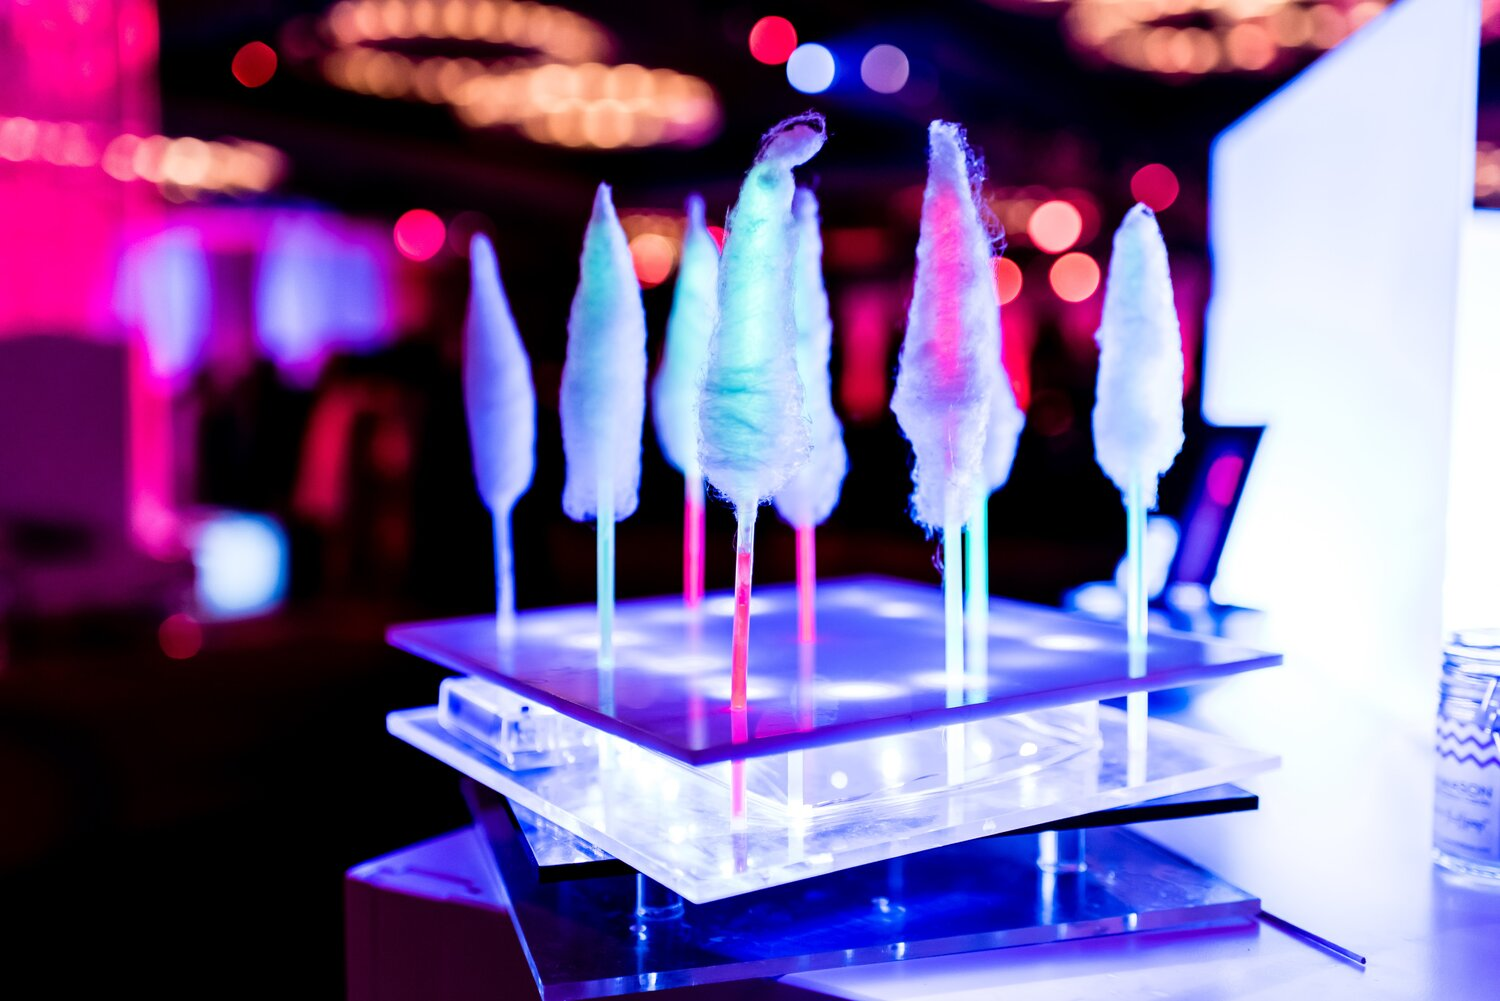 Fluffpops look SWEET spun on straws, sticks and glow-stick bracelets.